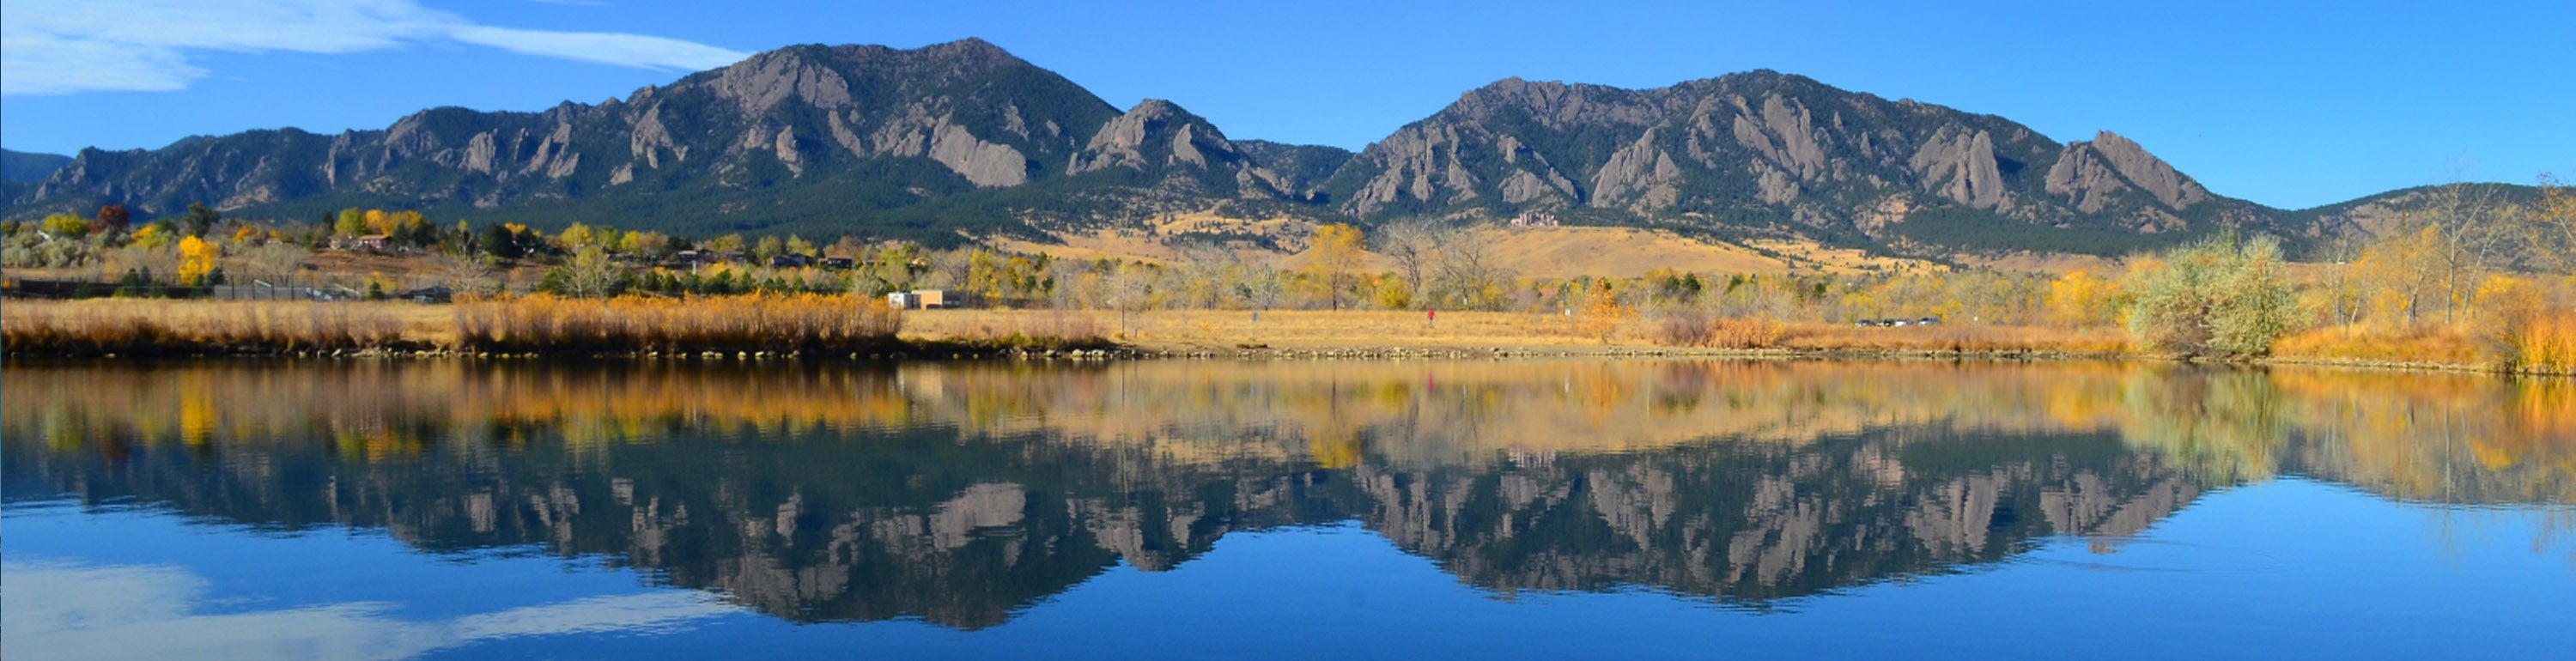 The Flatirons reflecting on a lake.